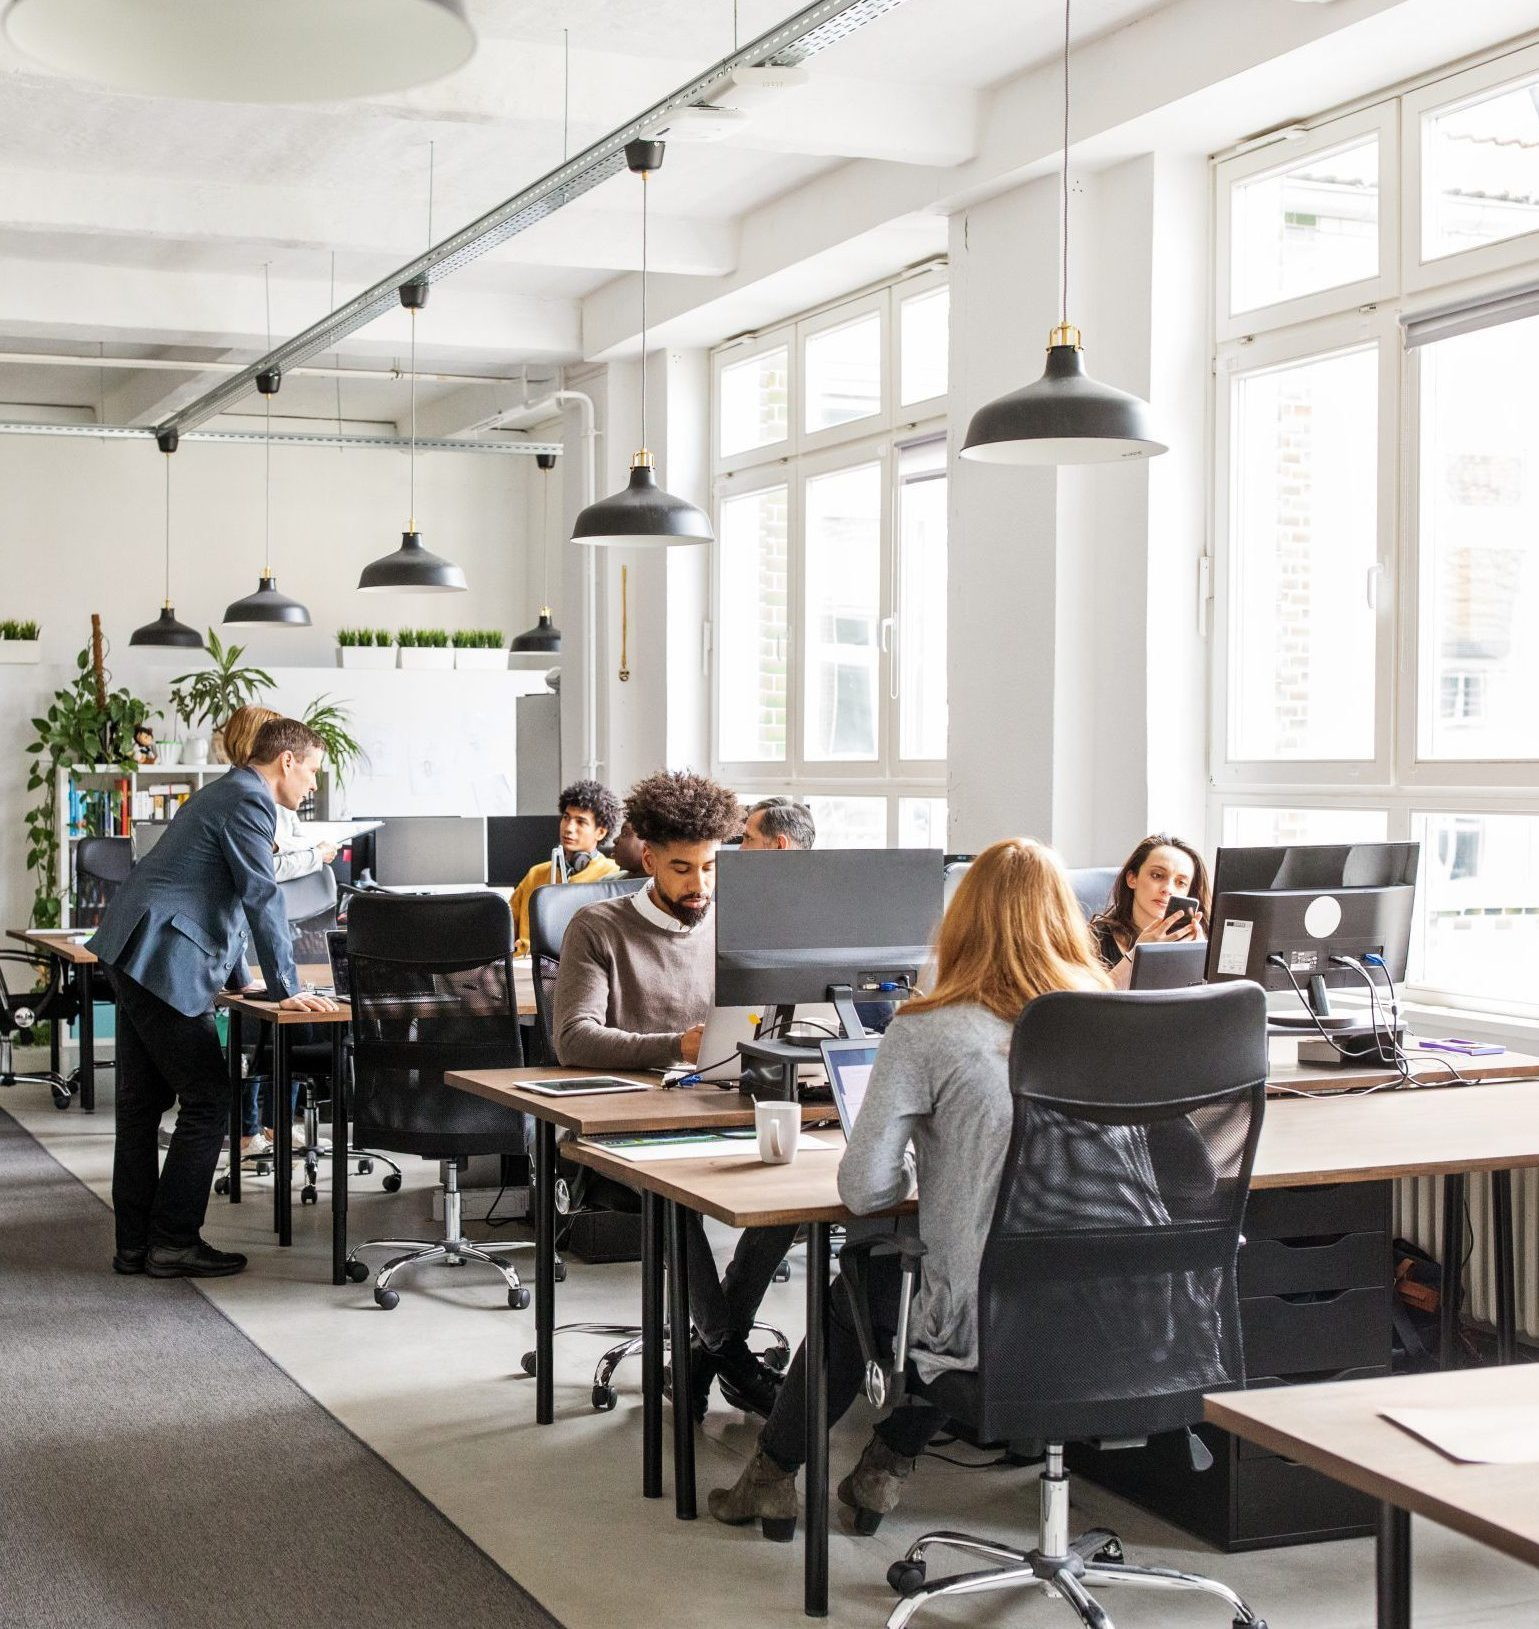 Business people working in modern office space